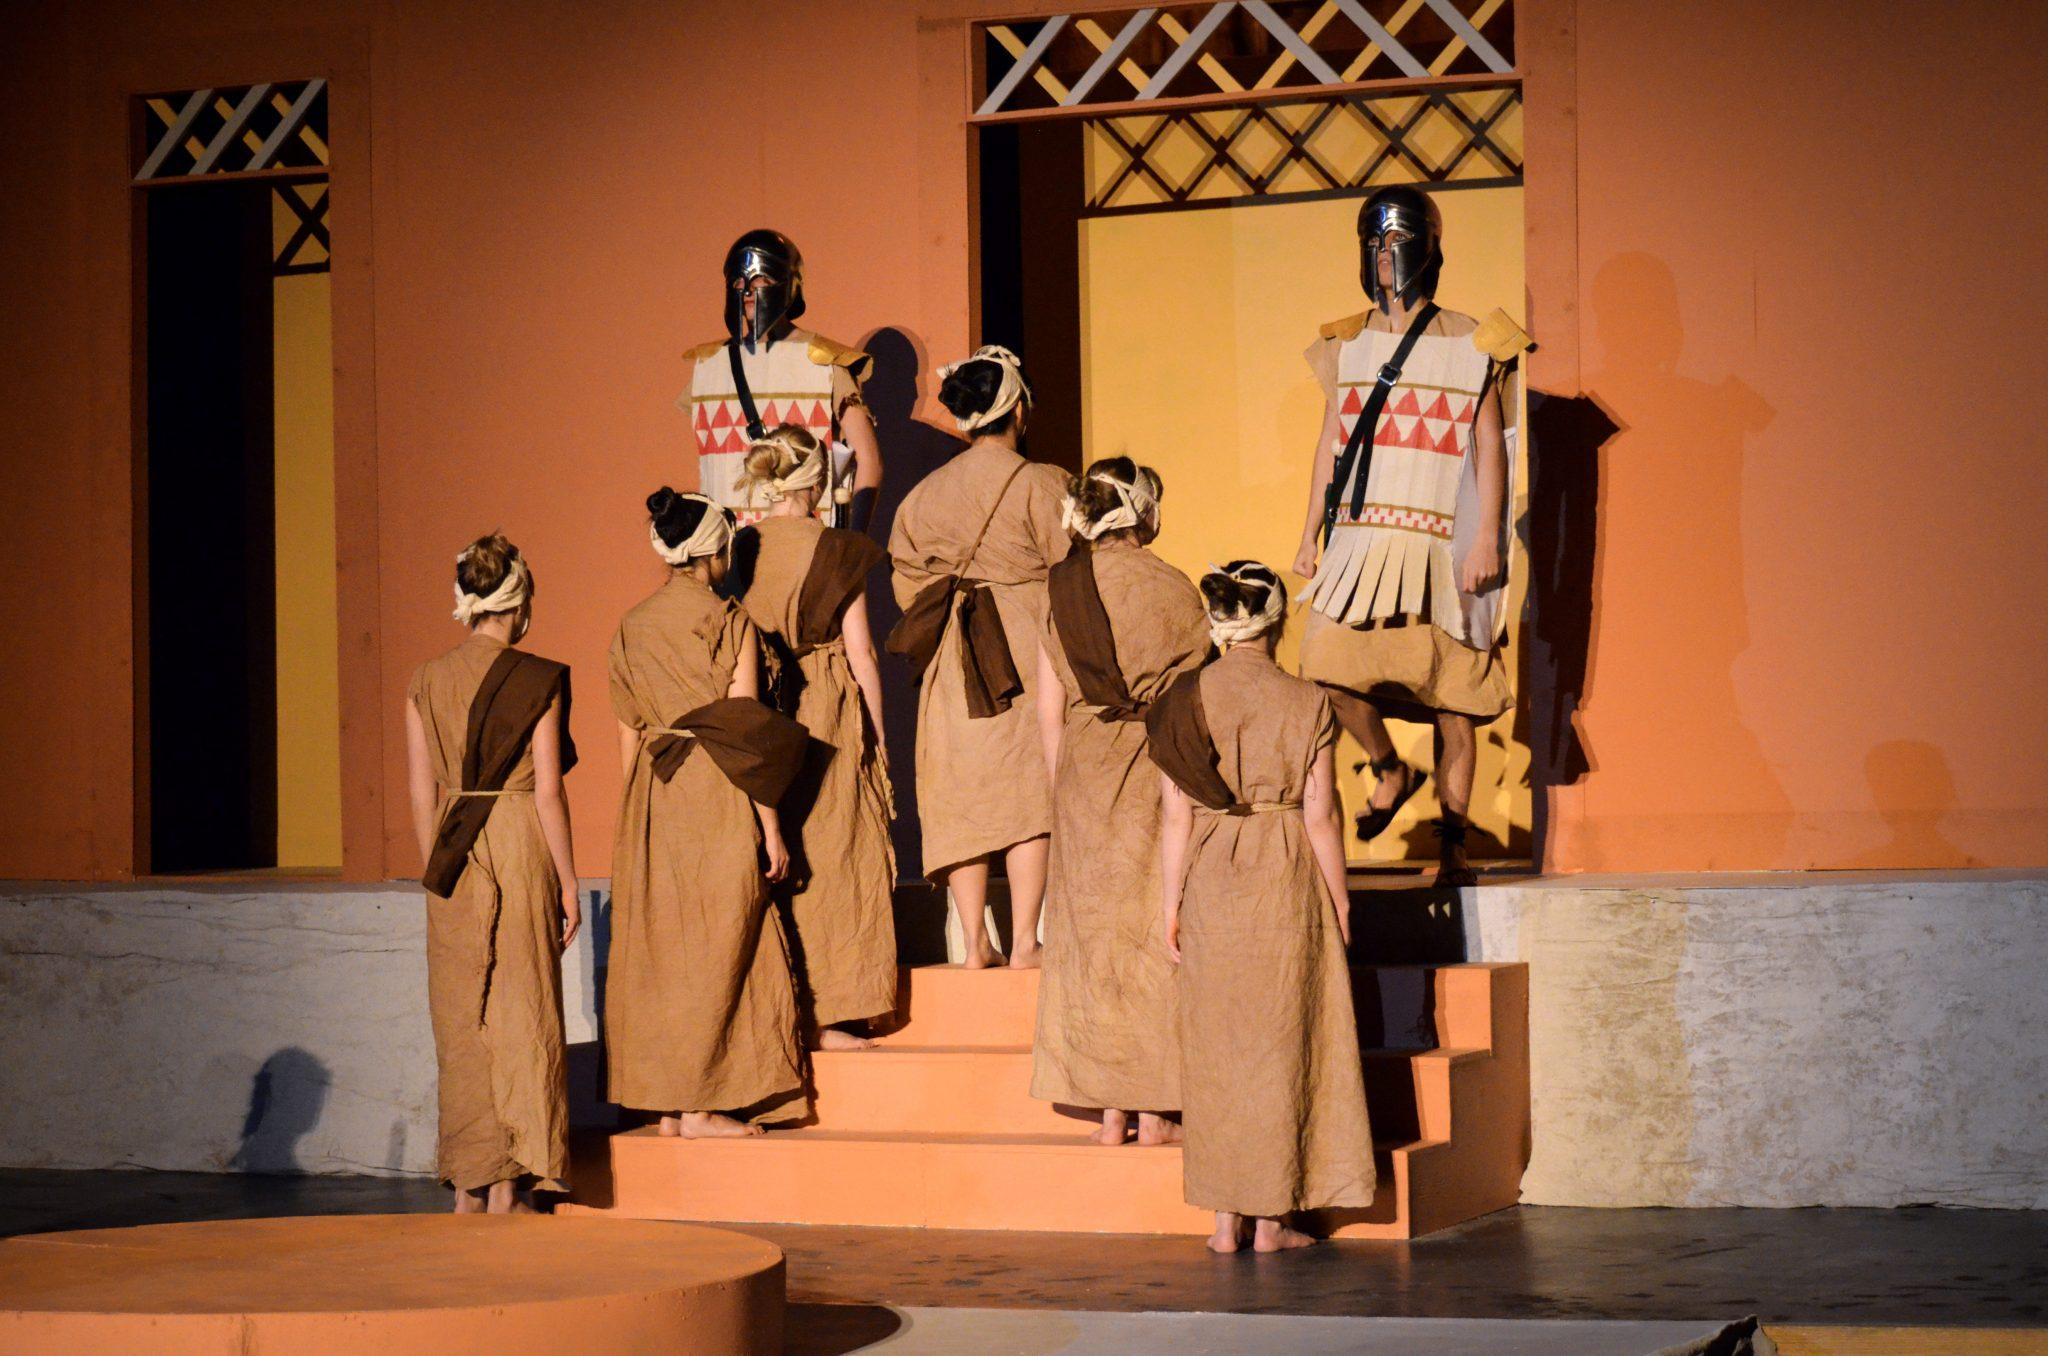 PHOTOS: Hecuba